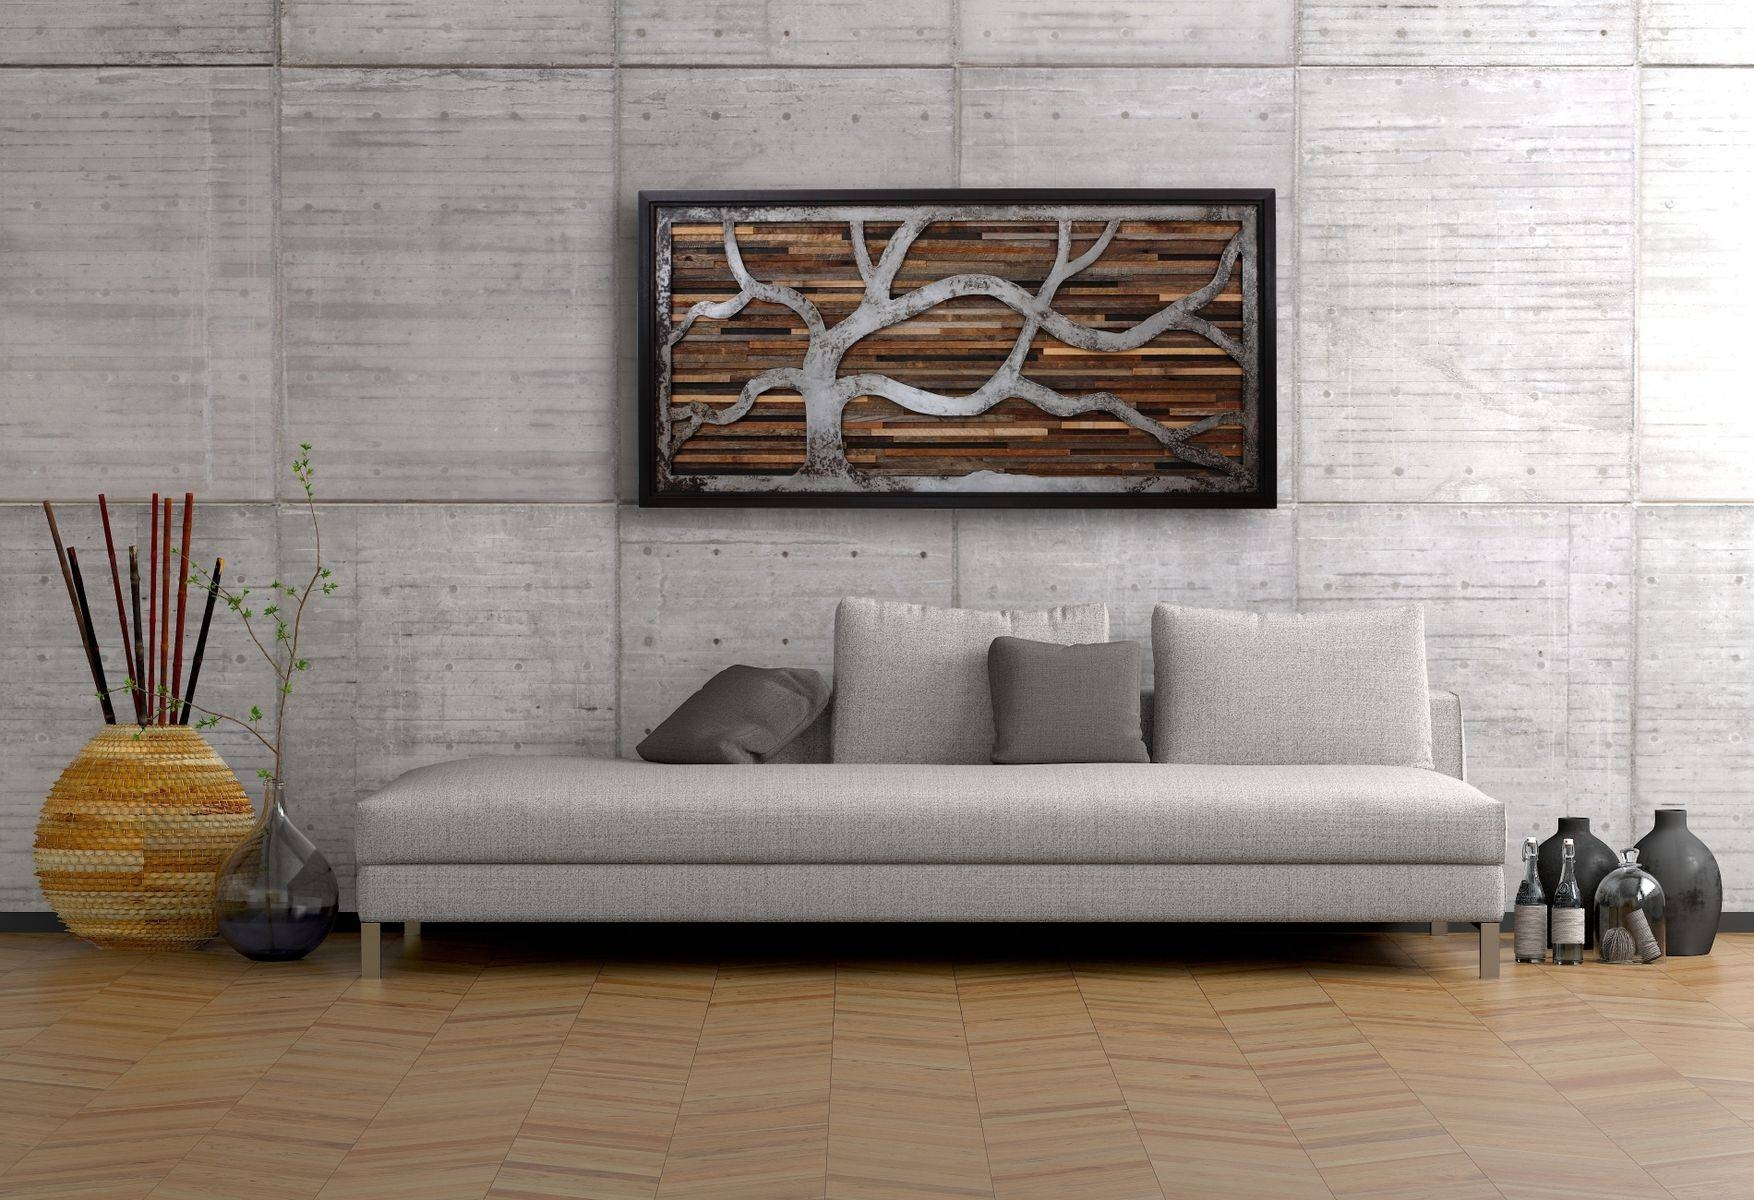 Handmade Reclaimed Wood Wall Art Made Of Old Barnwood And Rustic Inside Best And Newest Wood Wall Art (Gallery 13 of 25)